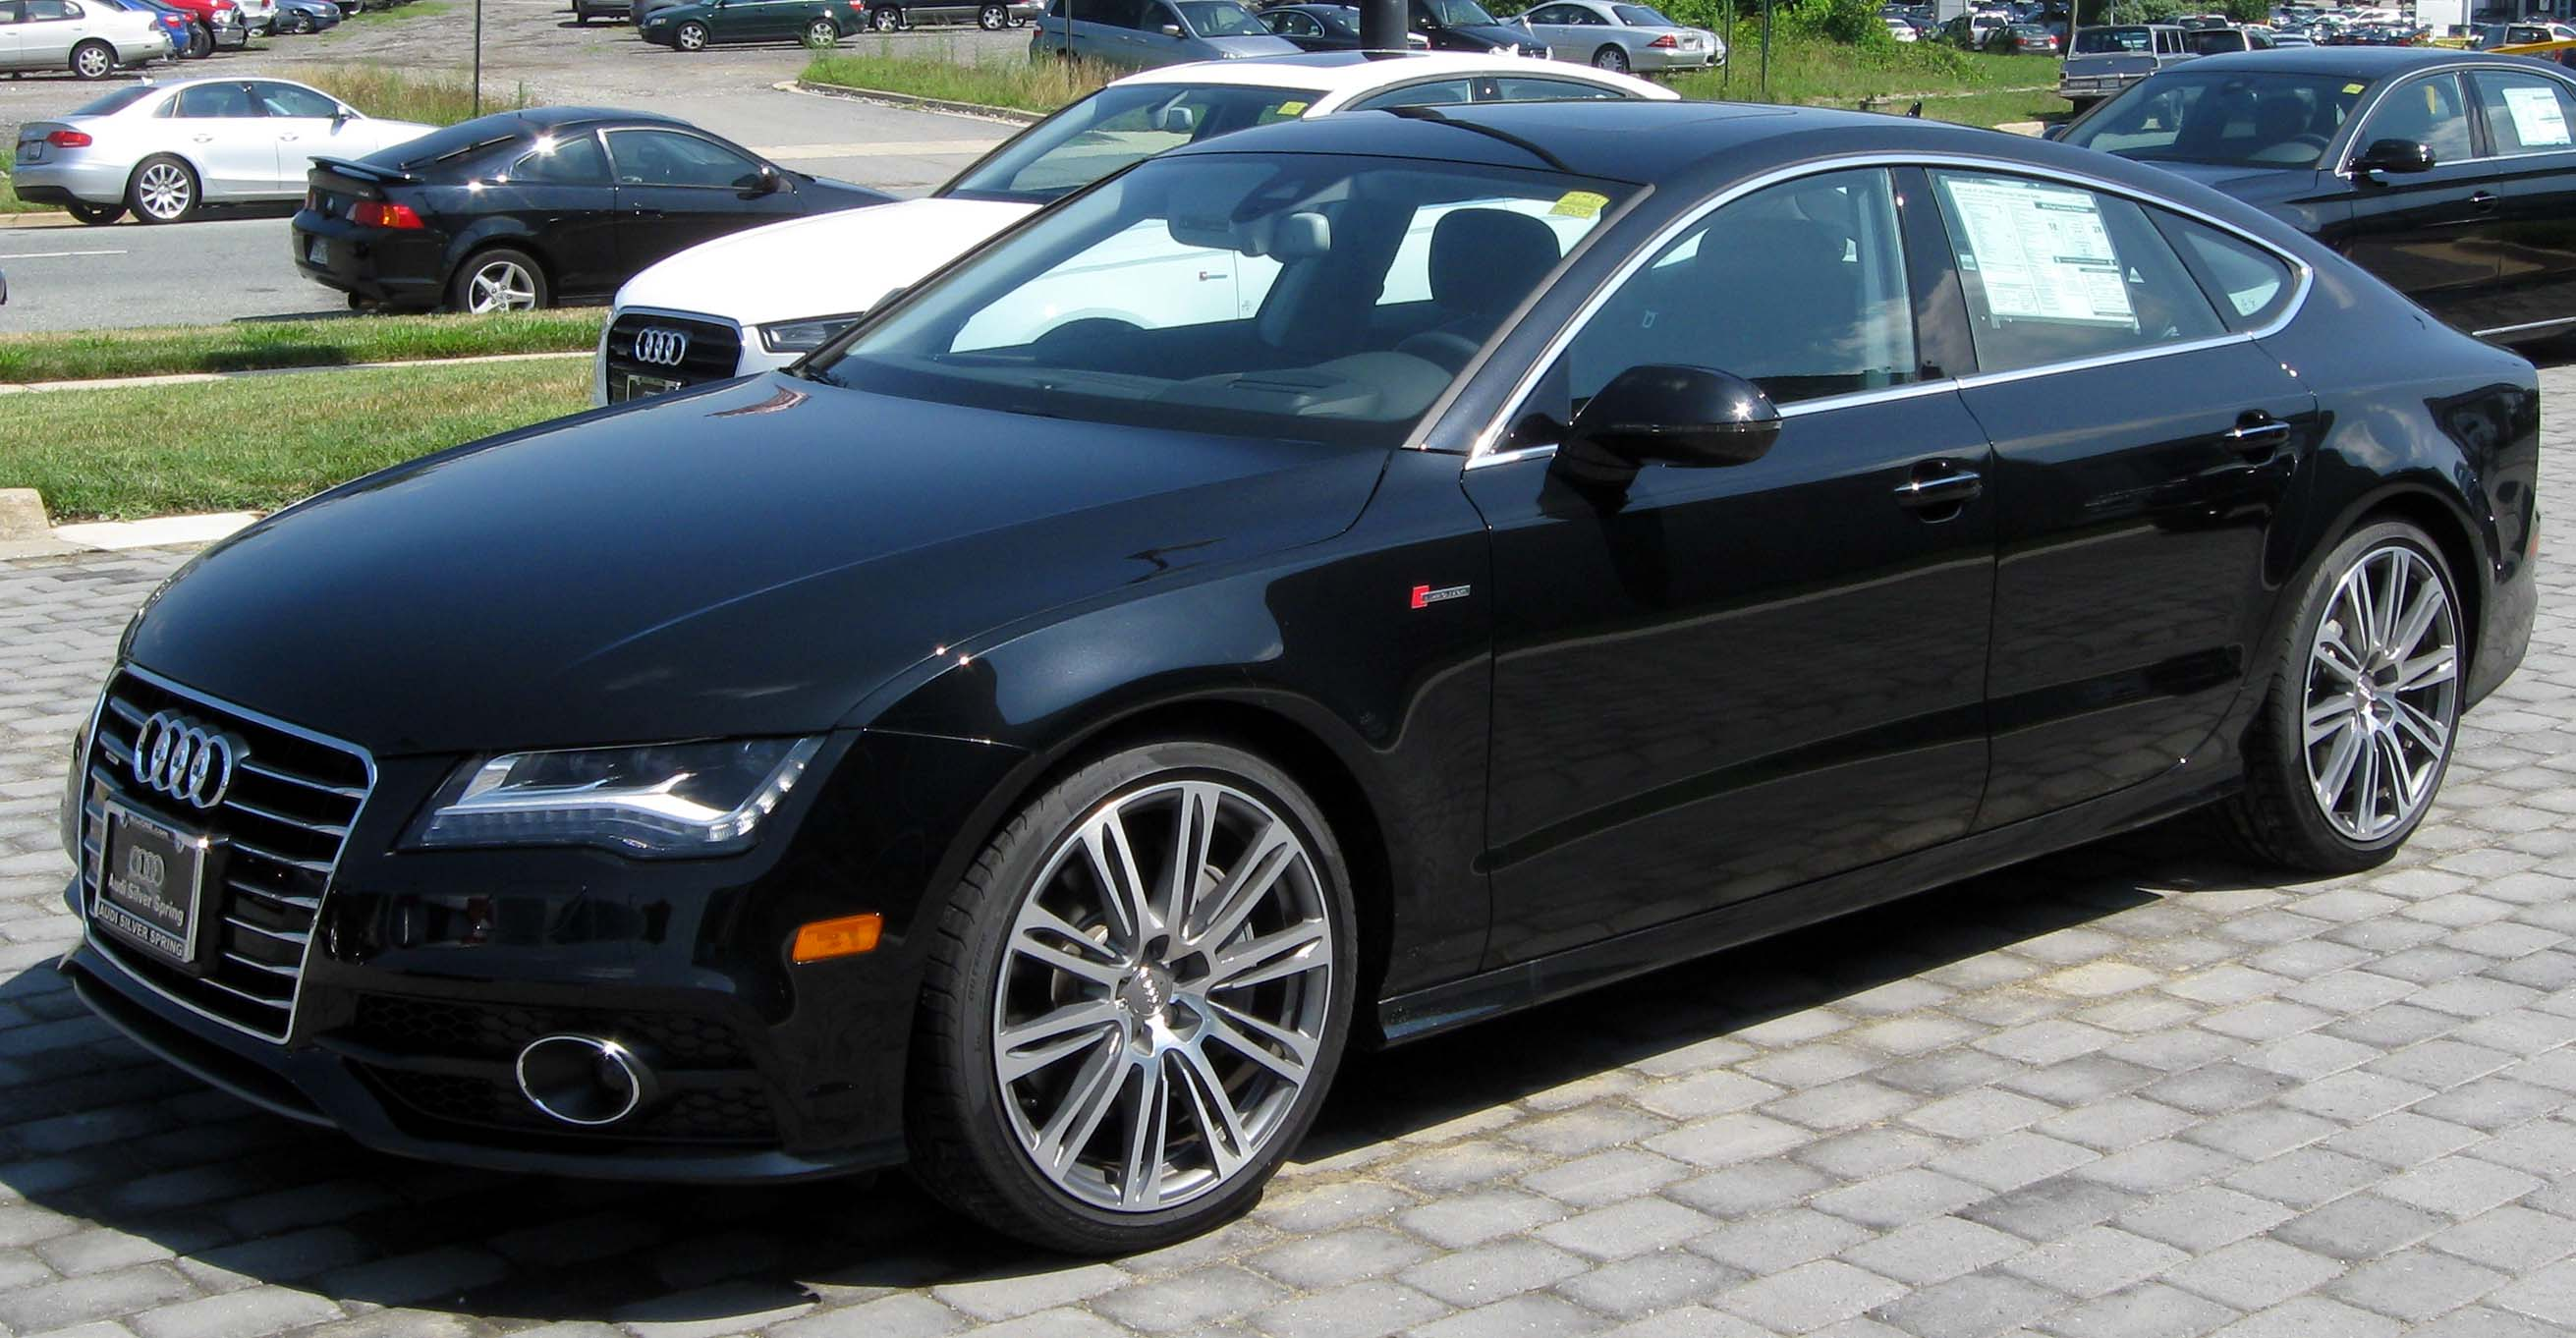 File 2012 Audi A7 07 07 2011 1 Jpg Wikimedia Commons